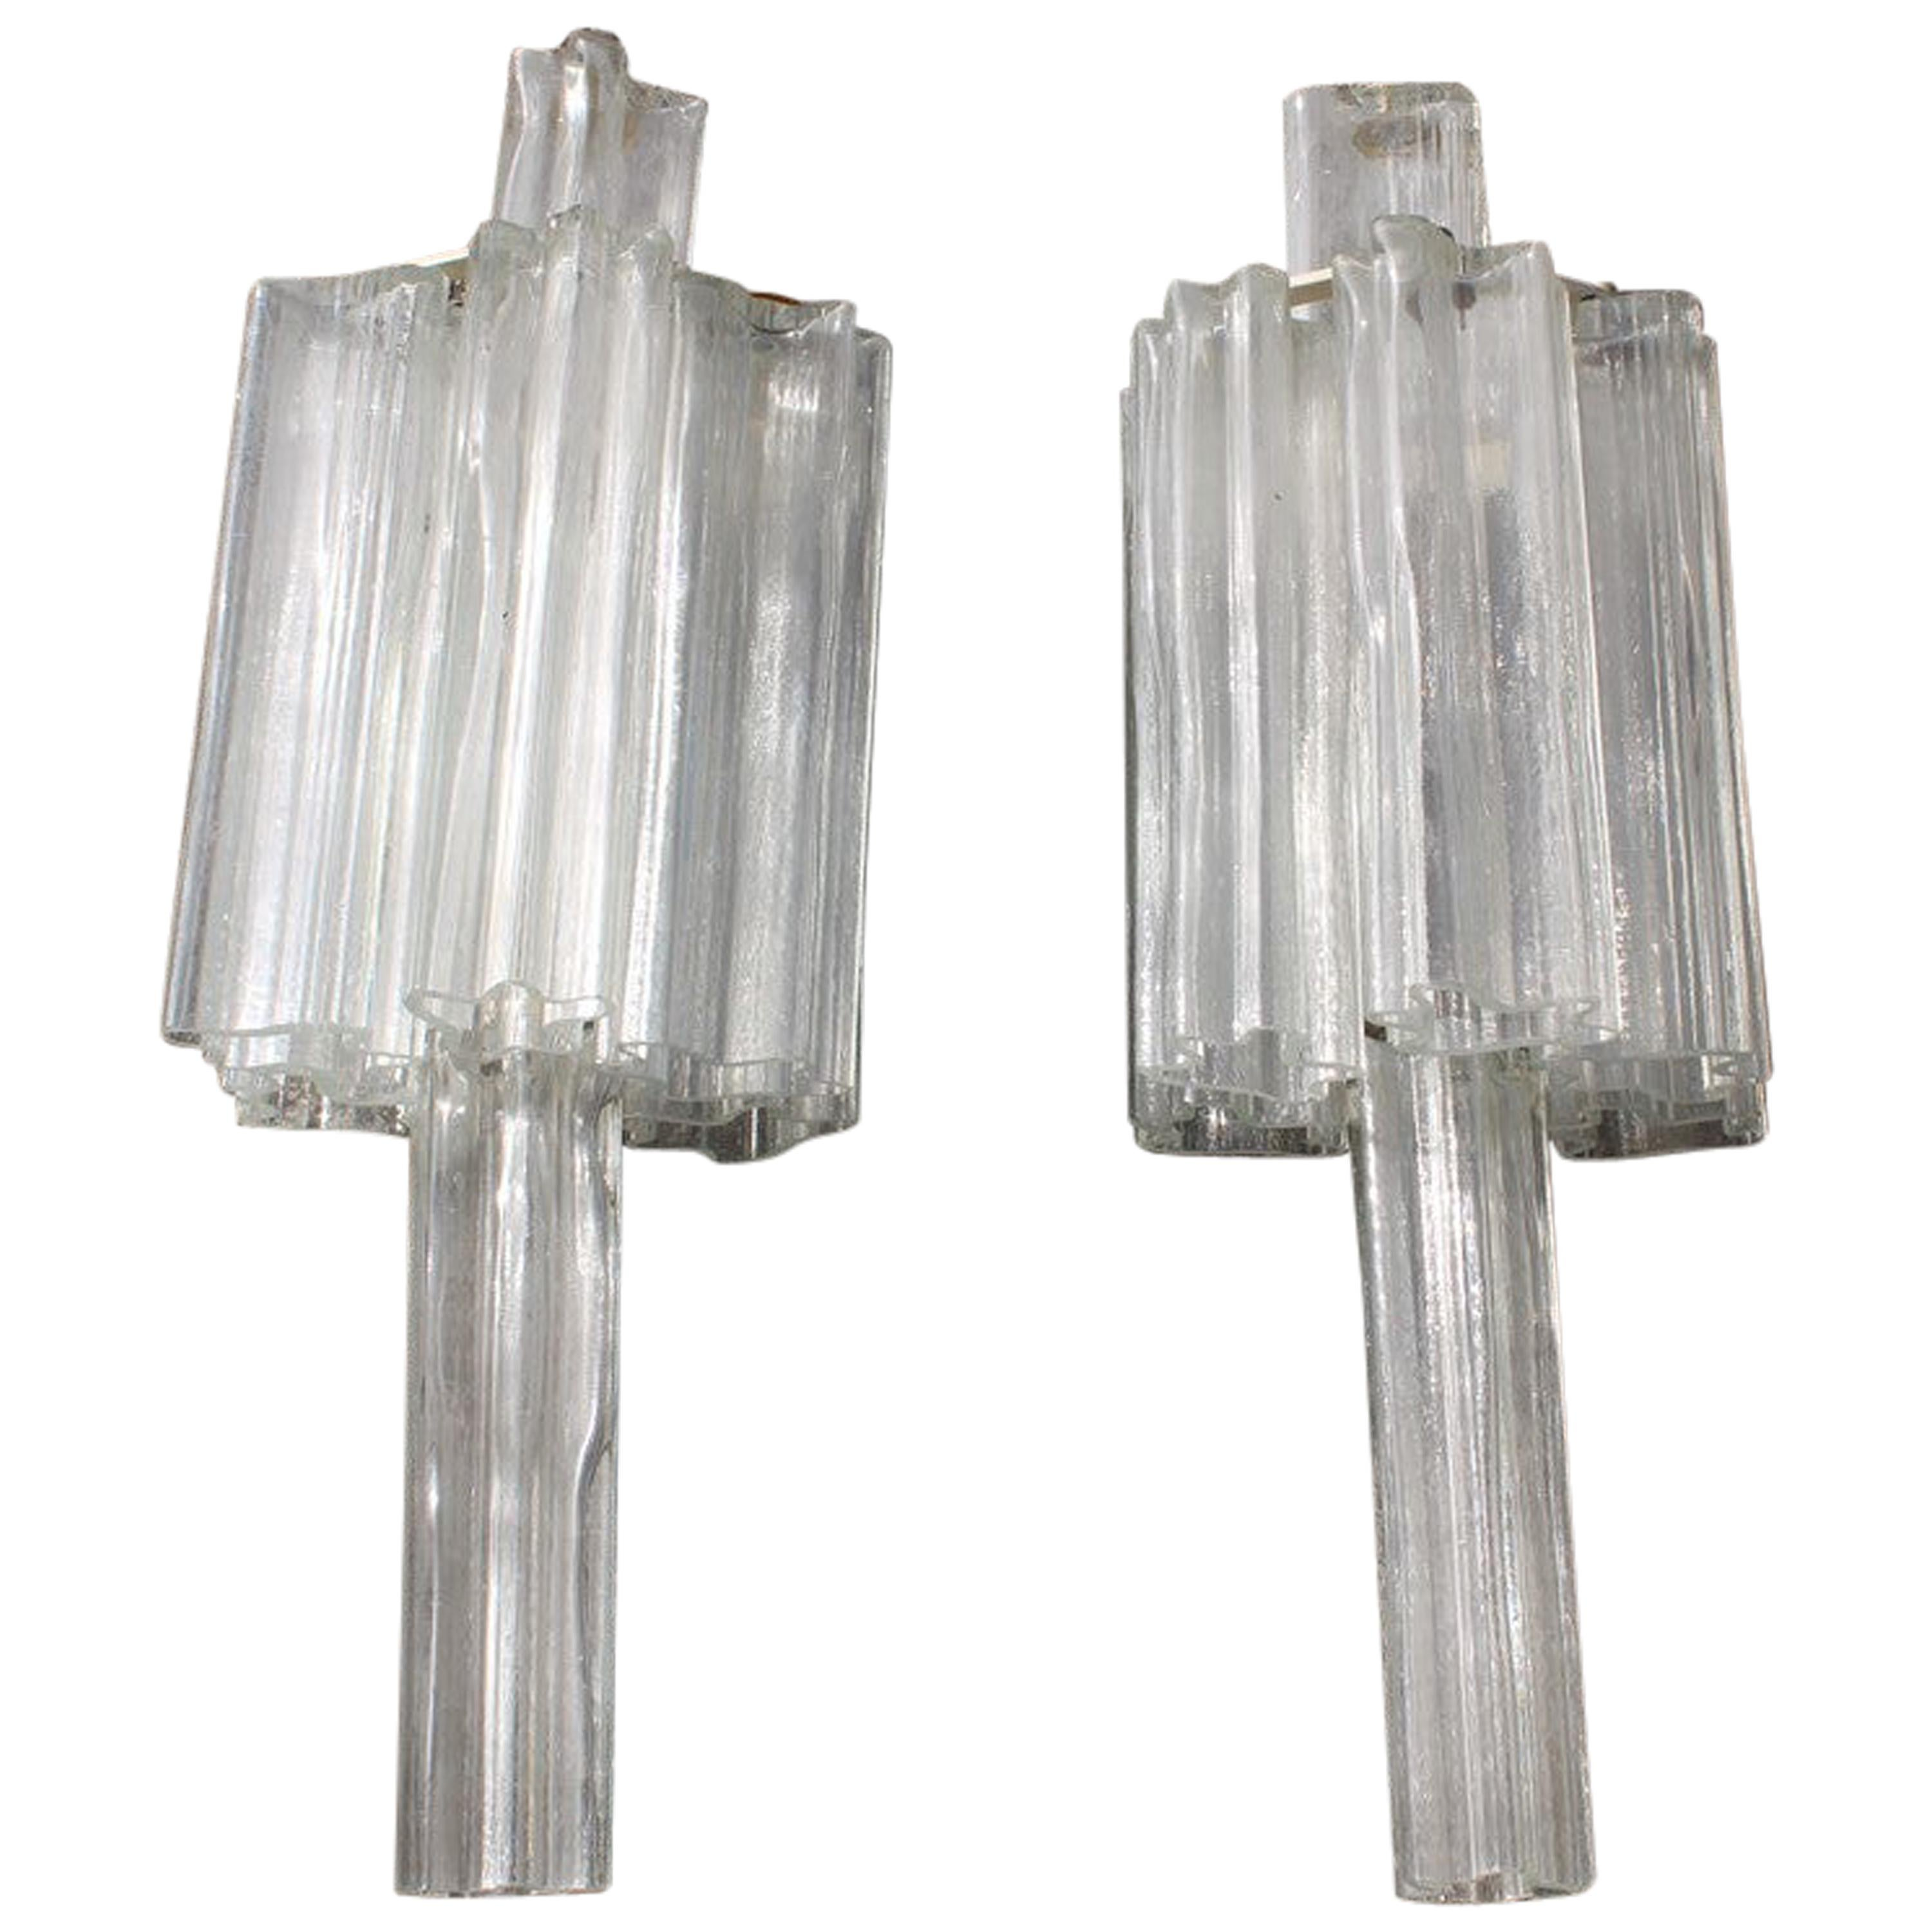 Venini Pair of Murano Transparent Glass Wall Sconces Italian Design, 1960s